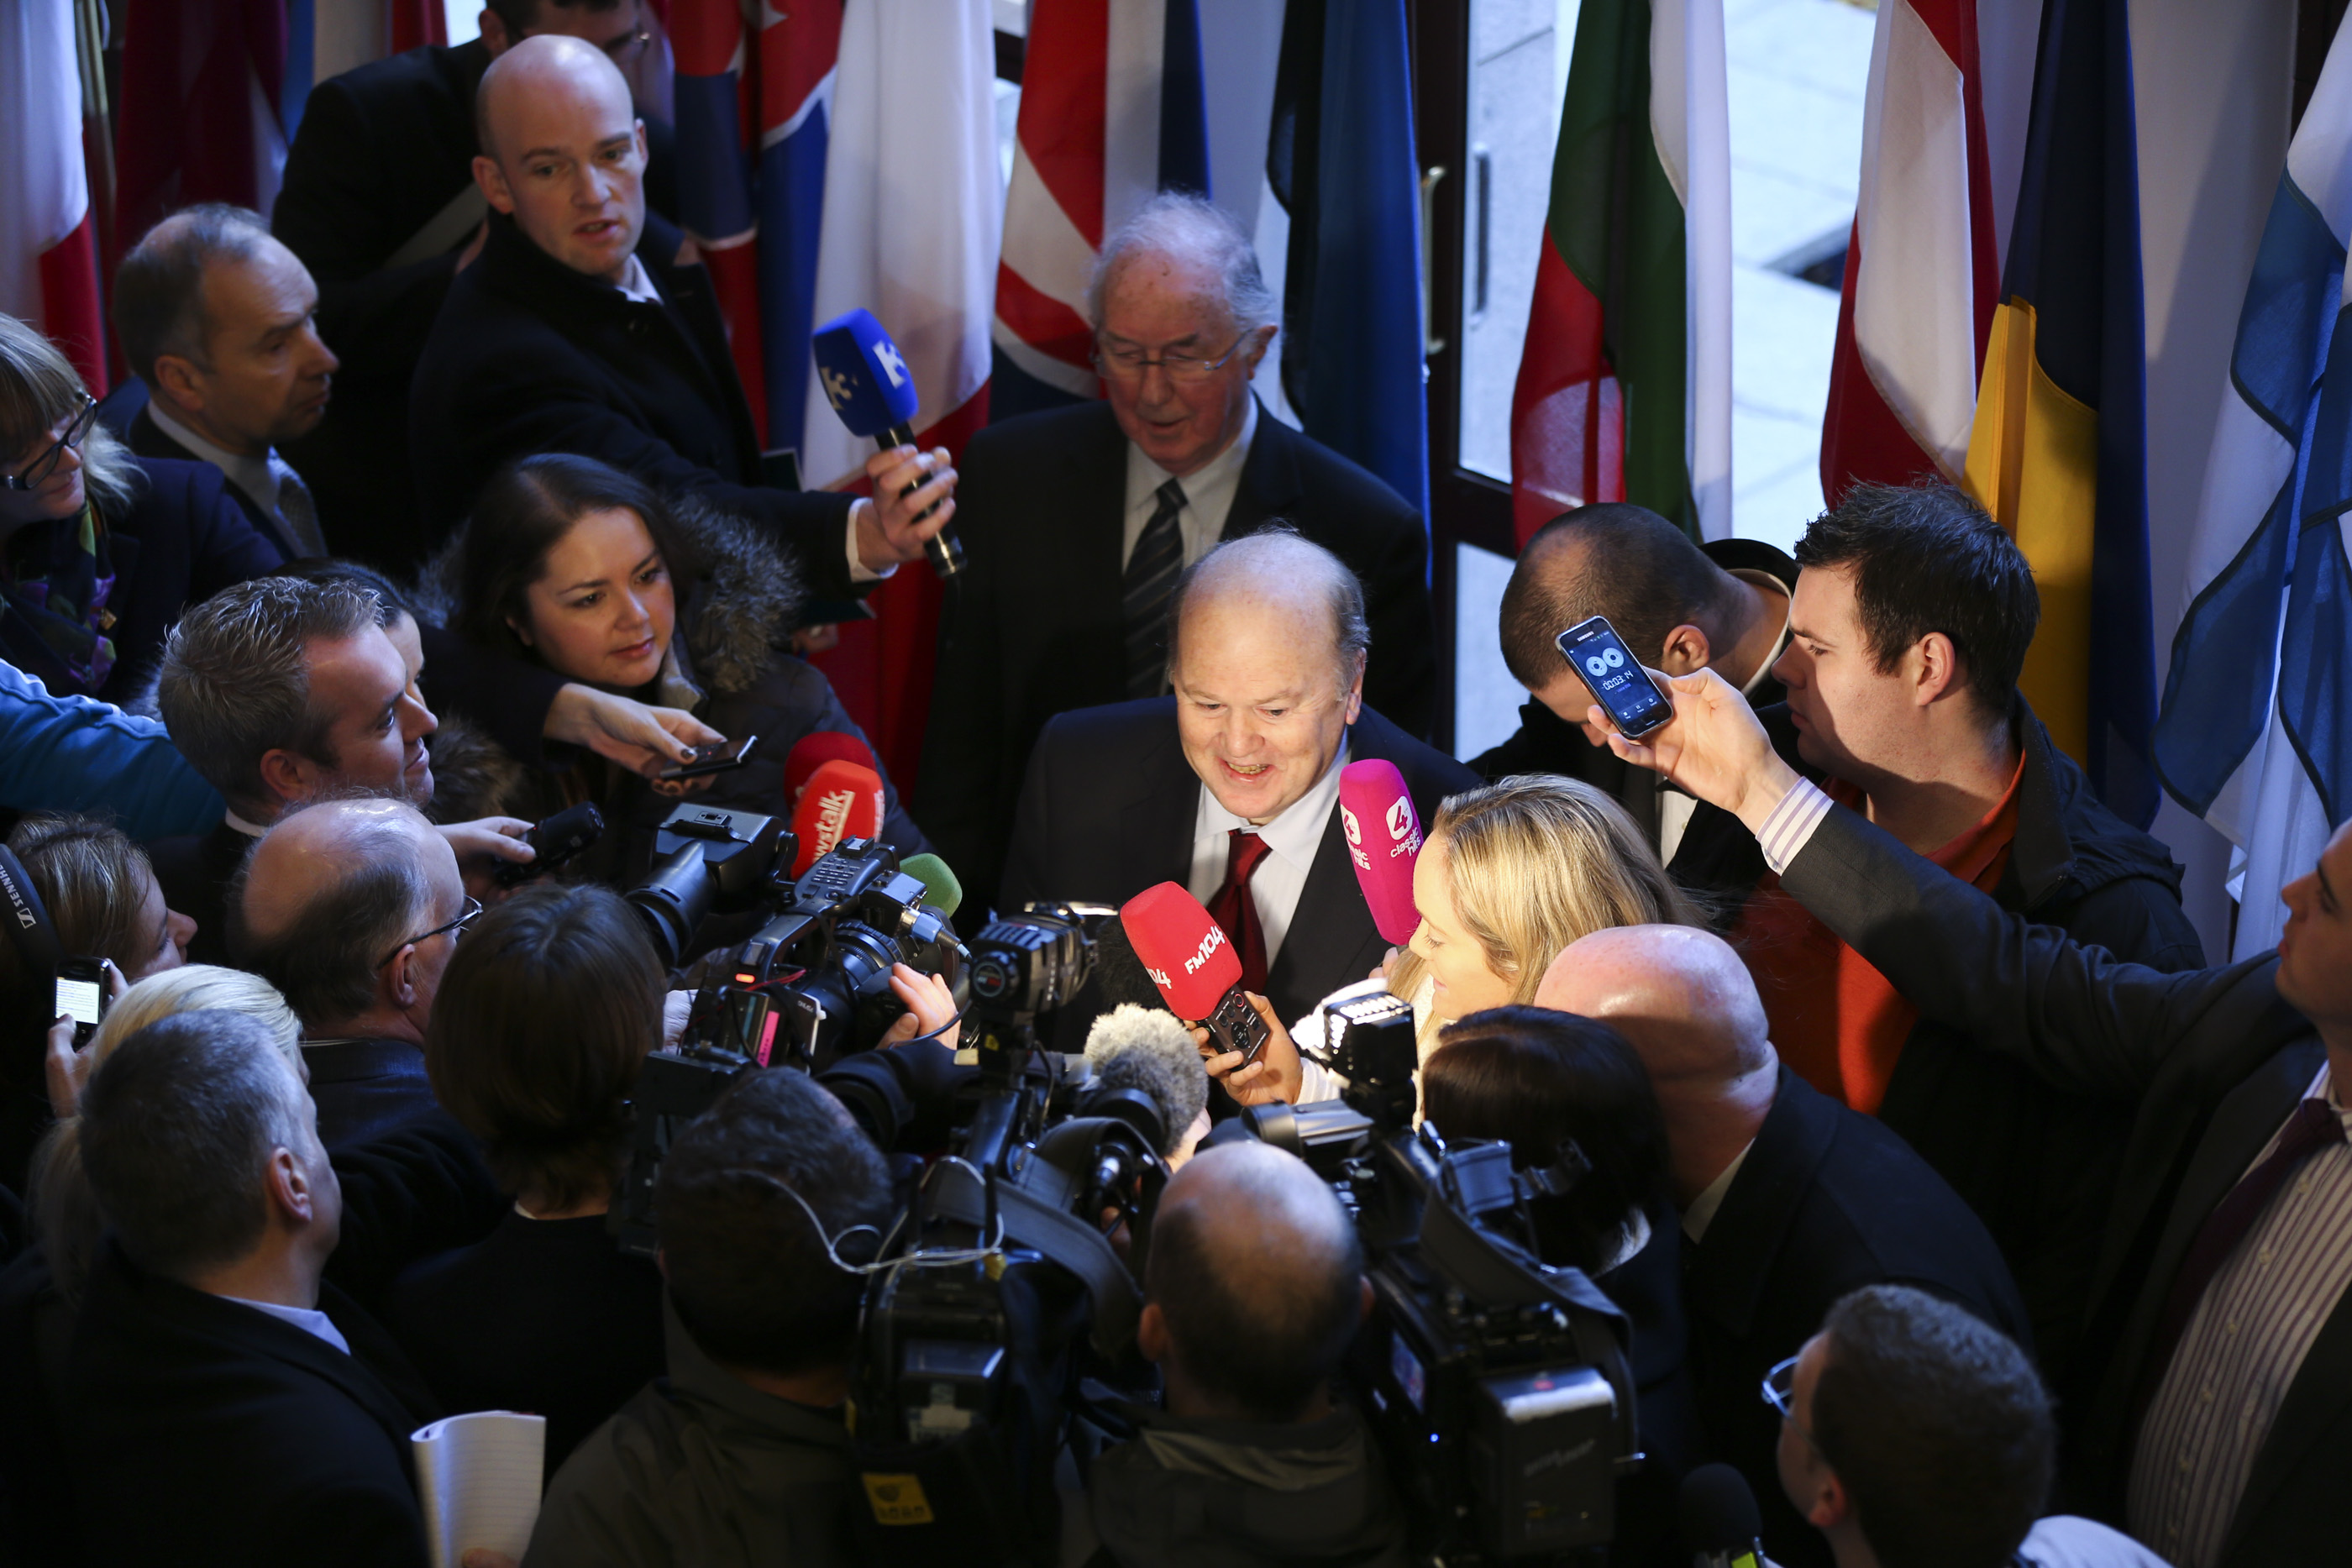 Irish Minister for Finance Michael Noonan T.D